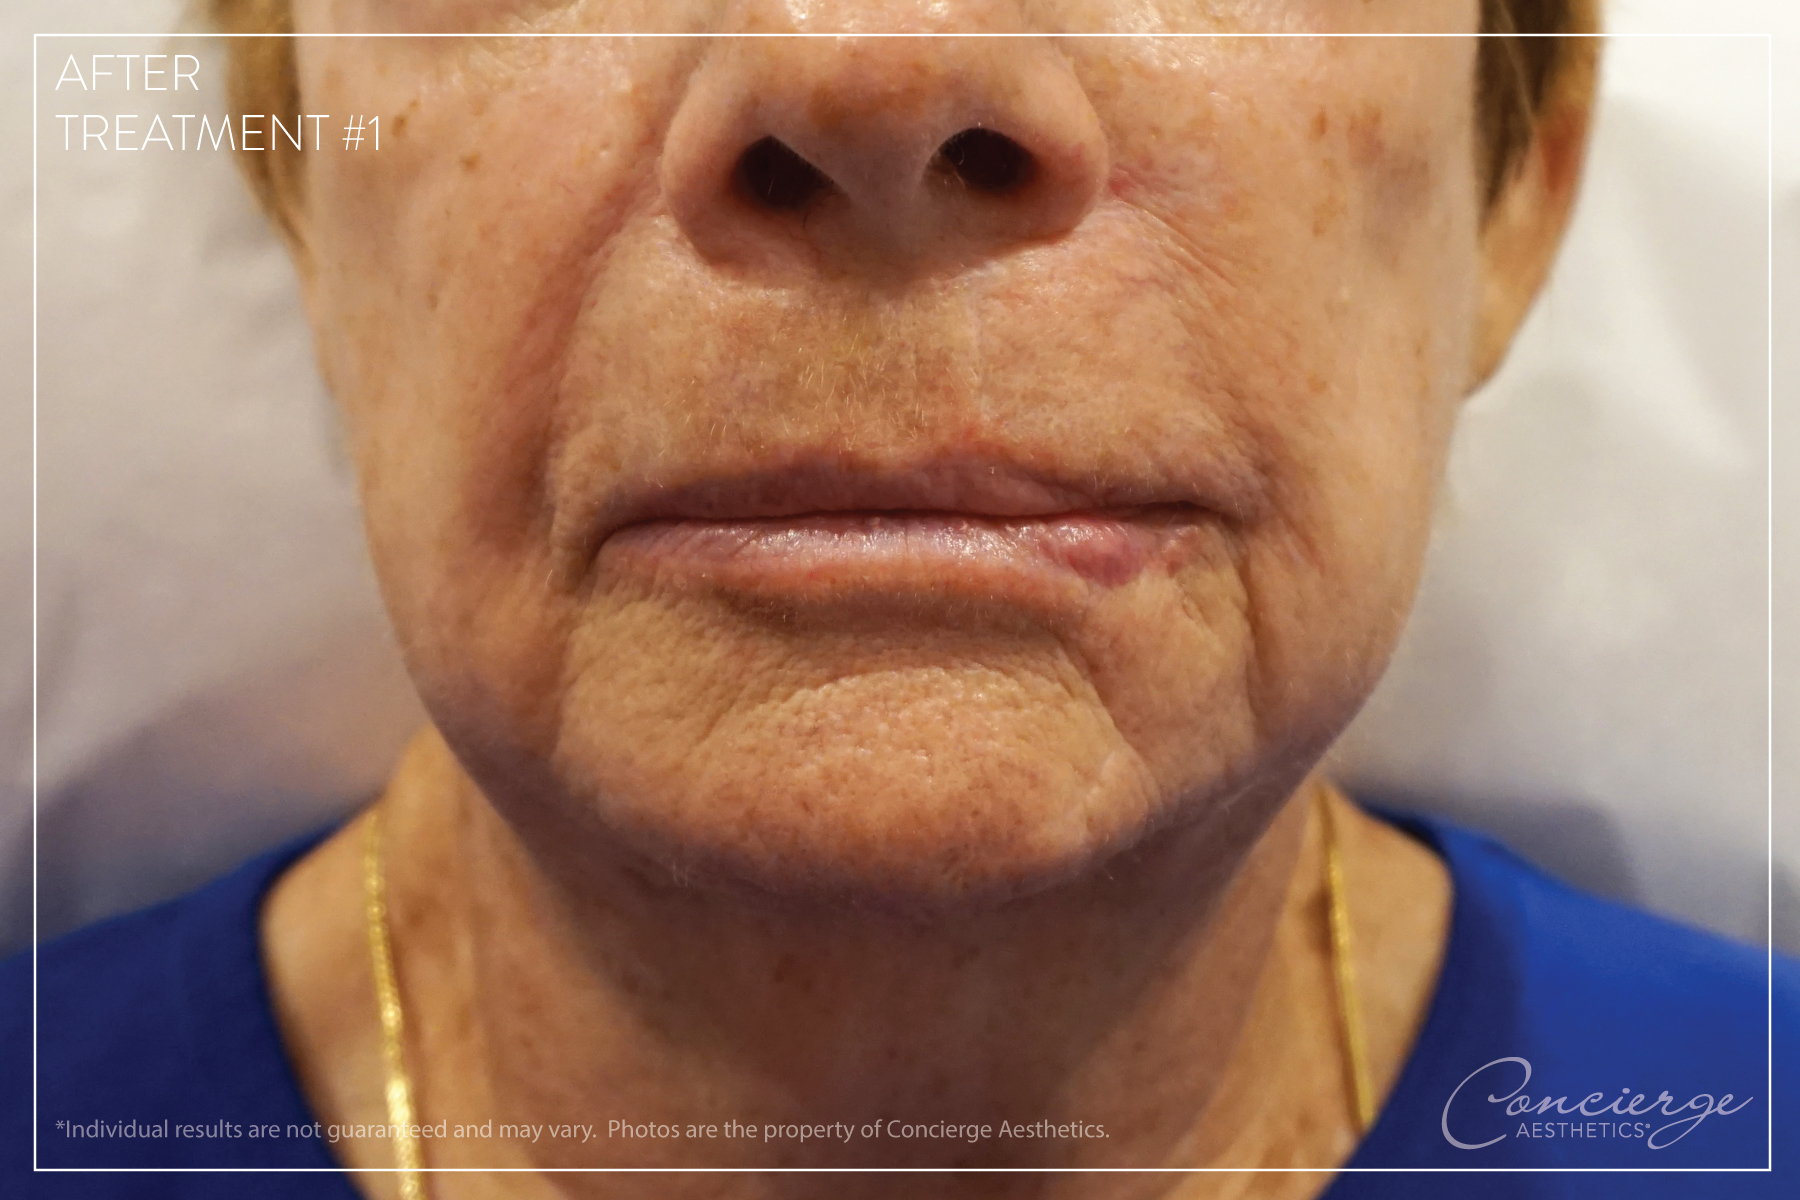 After: BOTOX® Cosmetic and JUVÉDERM® - Lips and Marionette